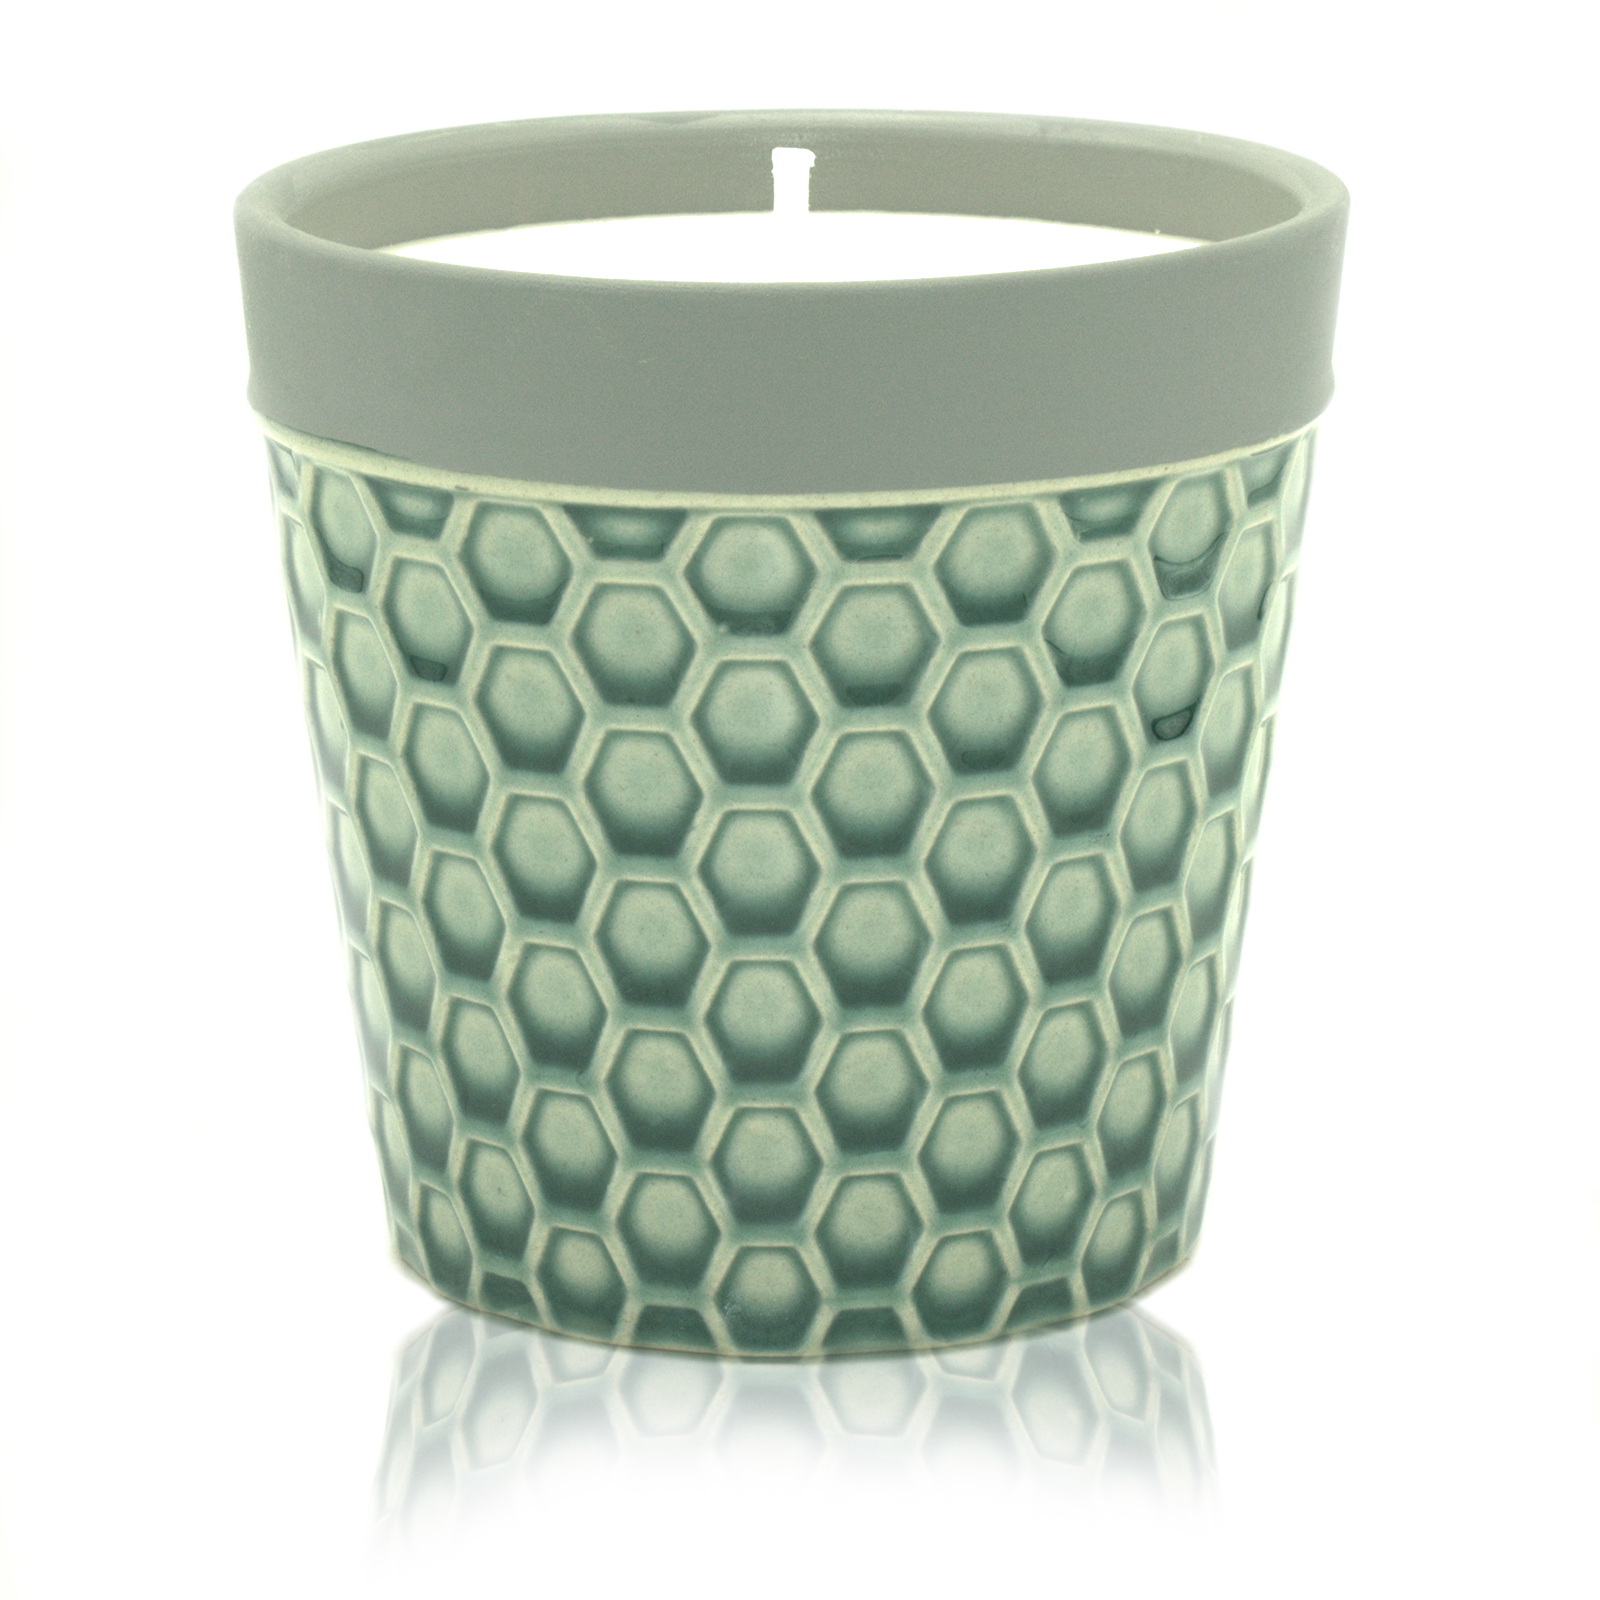 Home is Home Candle Pots Fruit Basket